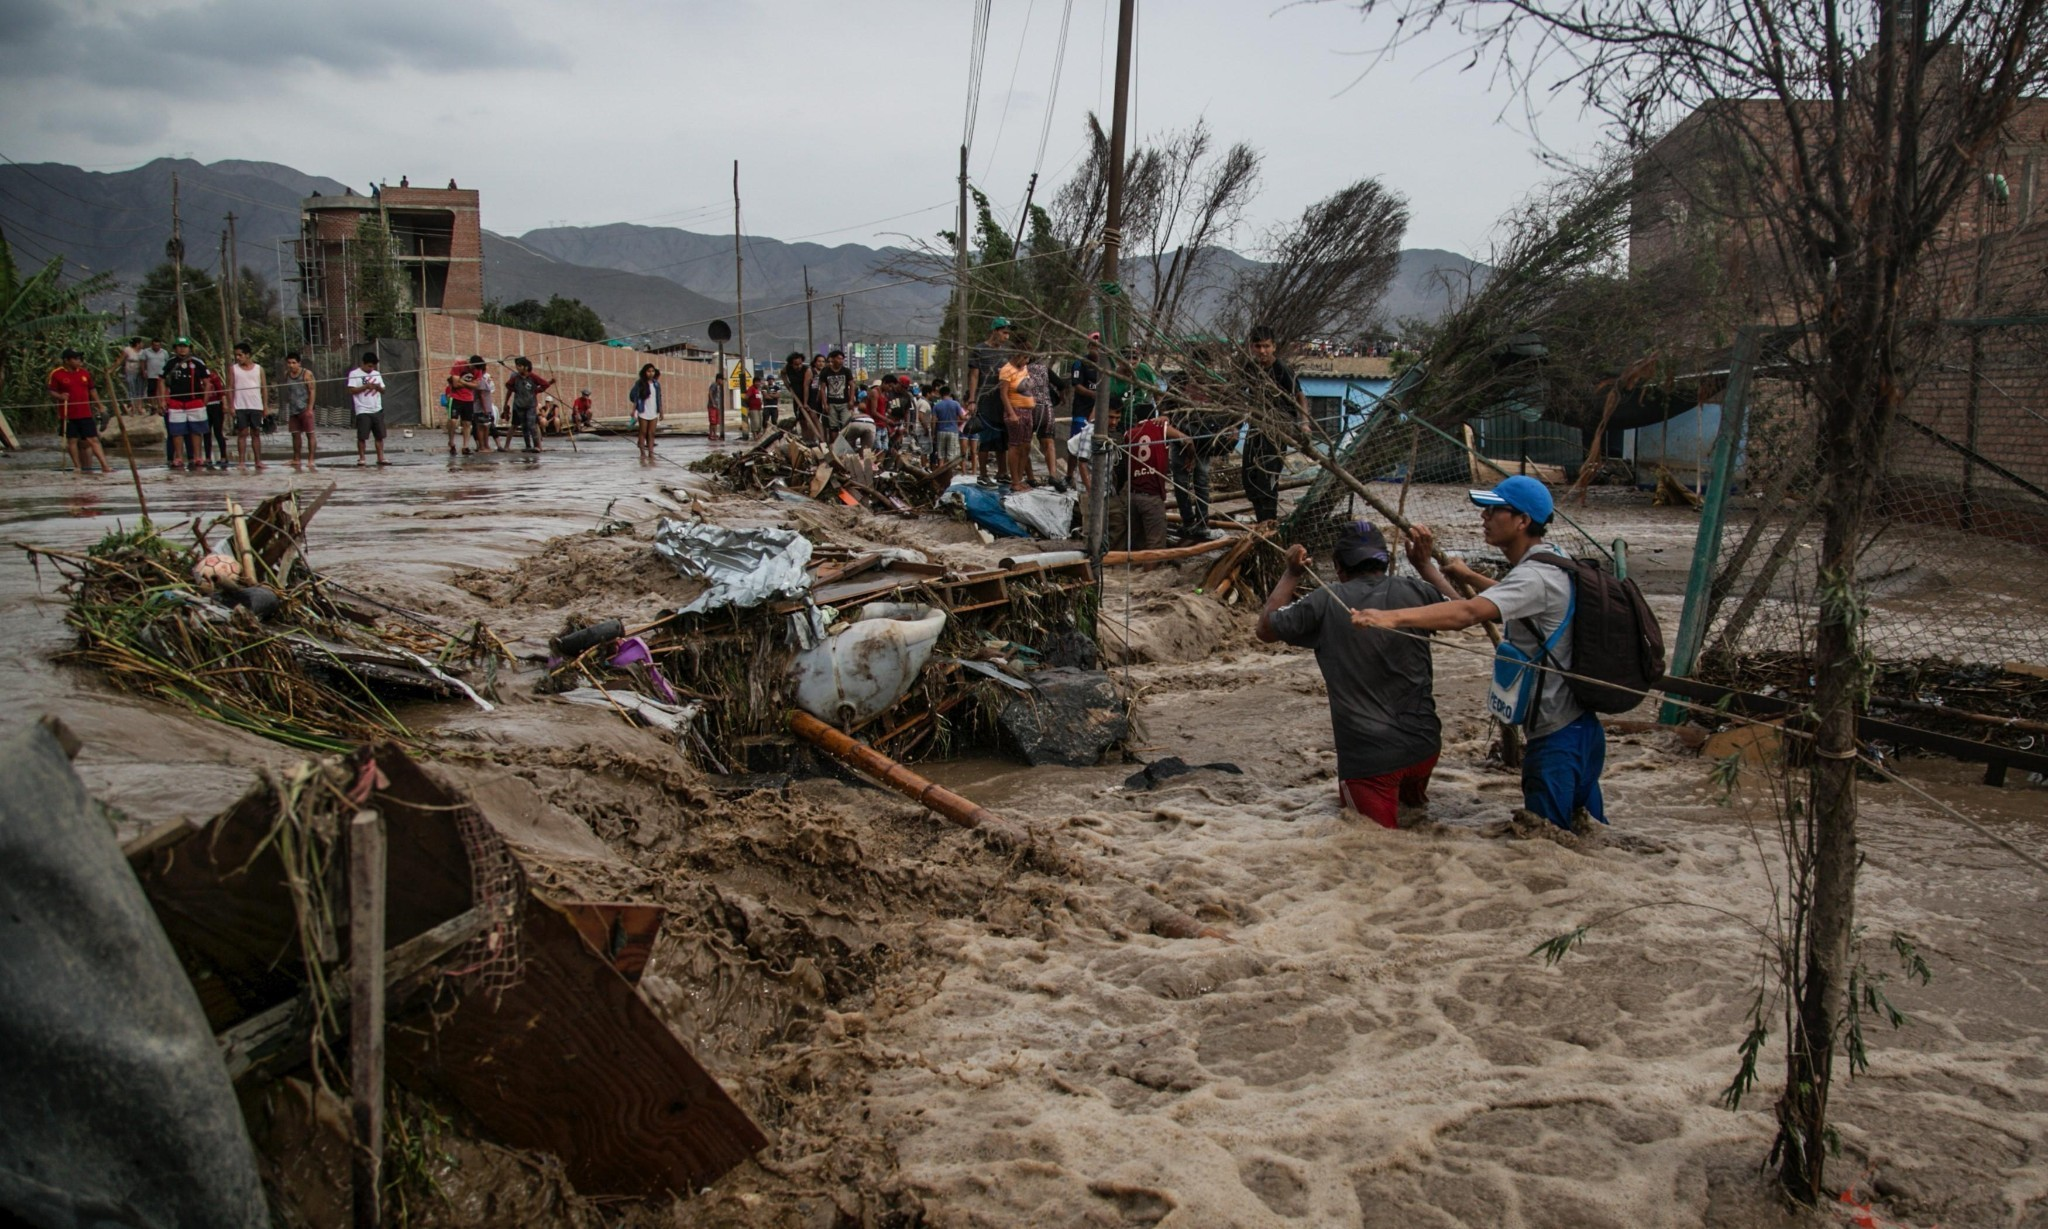 Lima's time bomb: how mudslides threaten the world's great 'self-built' city